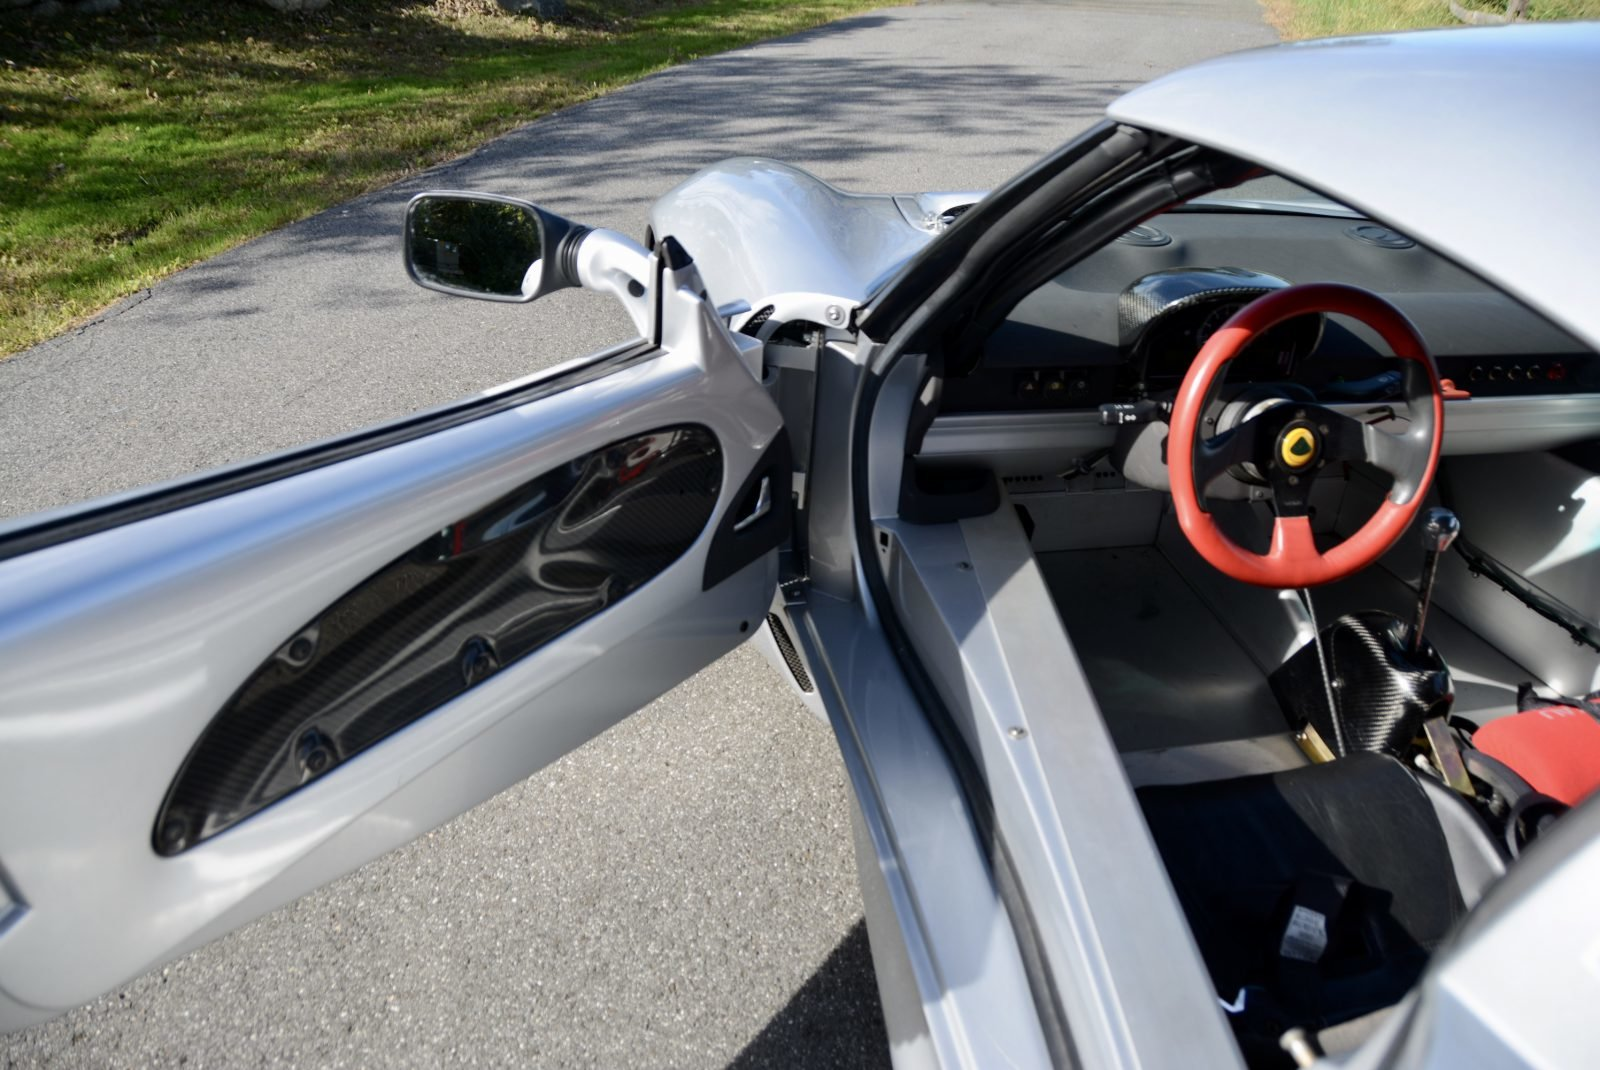 2000 Lotus Motorsport Elise Coupe Rare 1 of 12 Racer  $obo For Sale (picture 3 of 6)